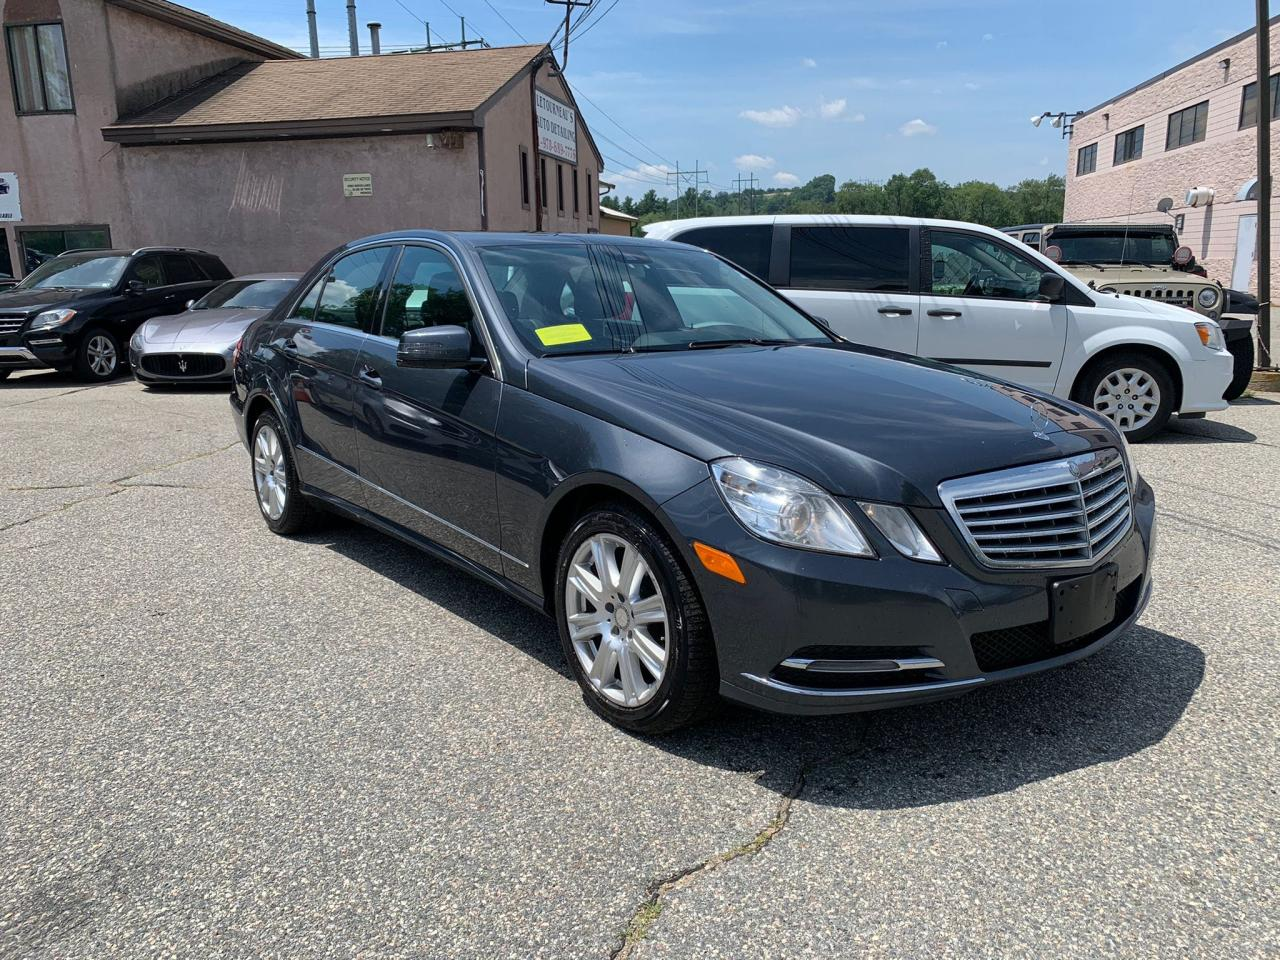 https://mcarsdelivery.com.ua/auctions-cars/10336/